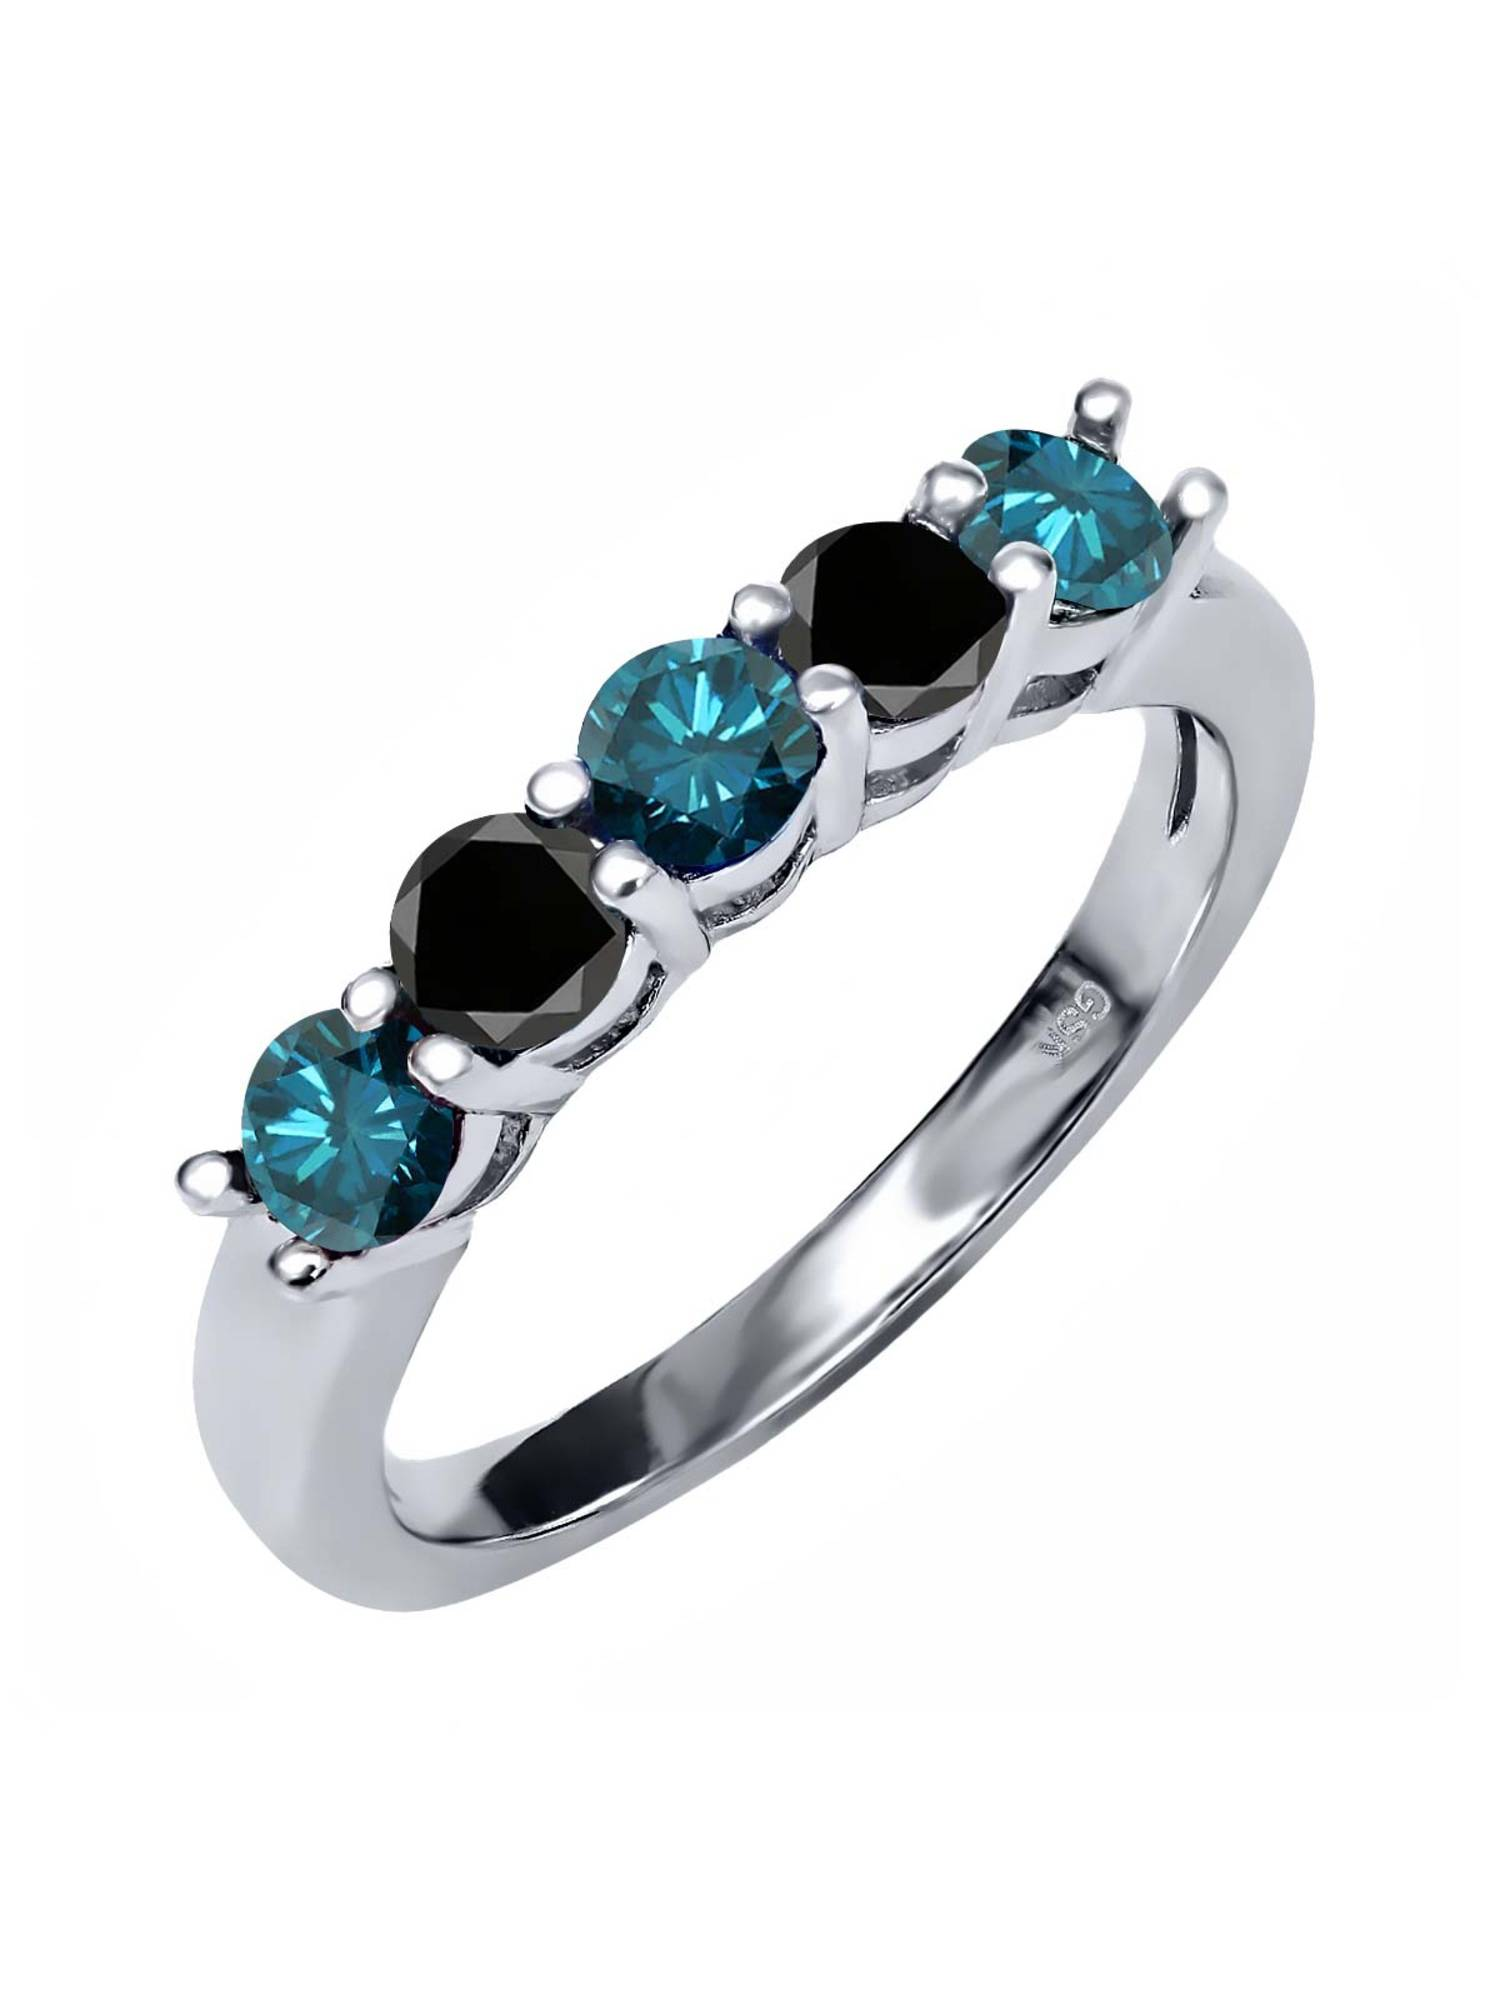 0.79 Ct Round Blue Diamond Black Diamond 925 Sterling Silver Ring by